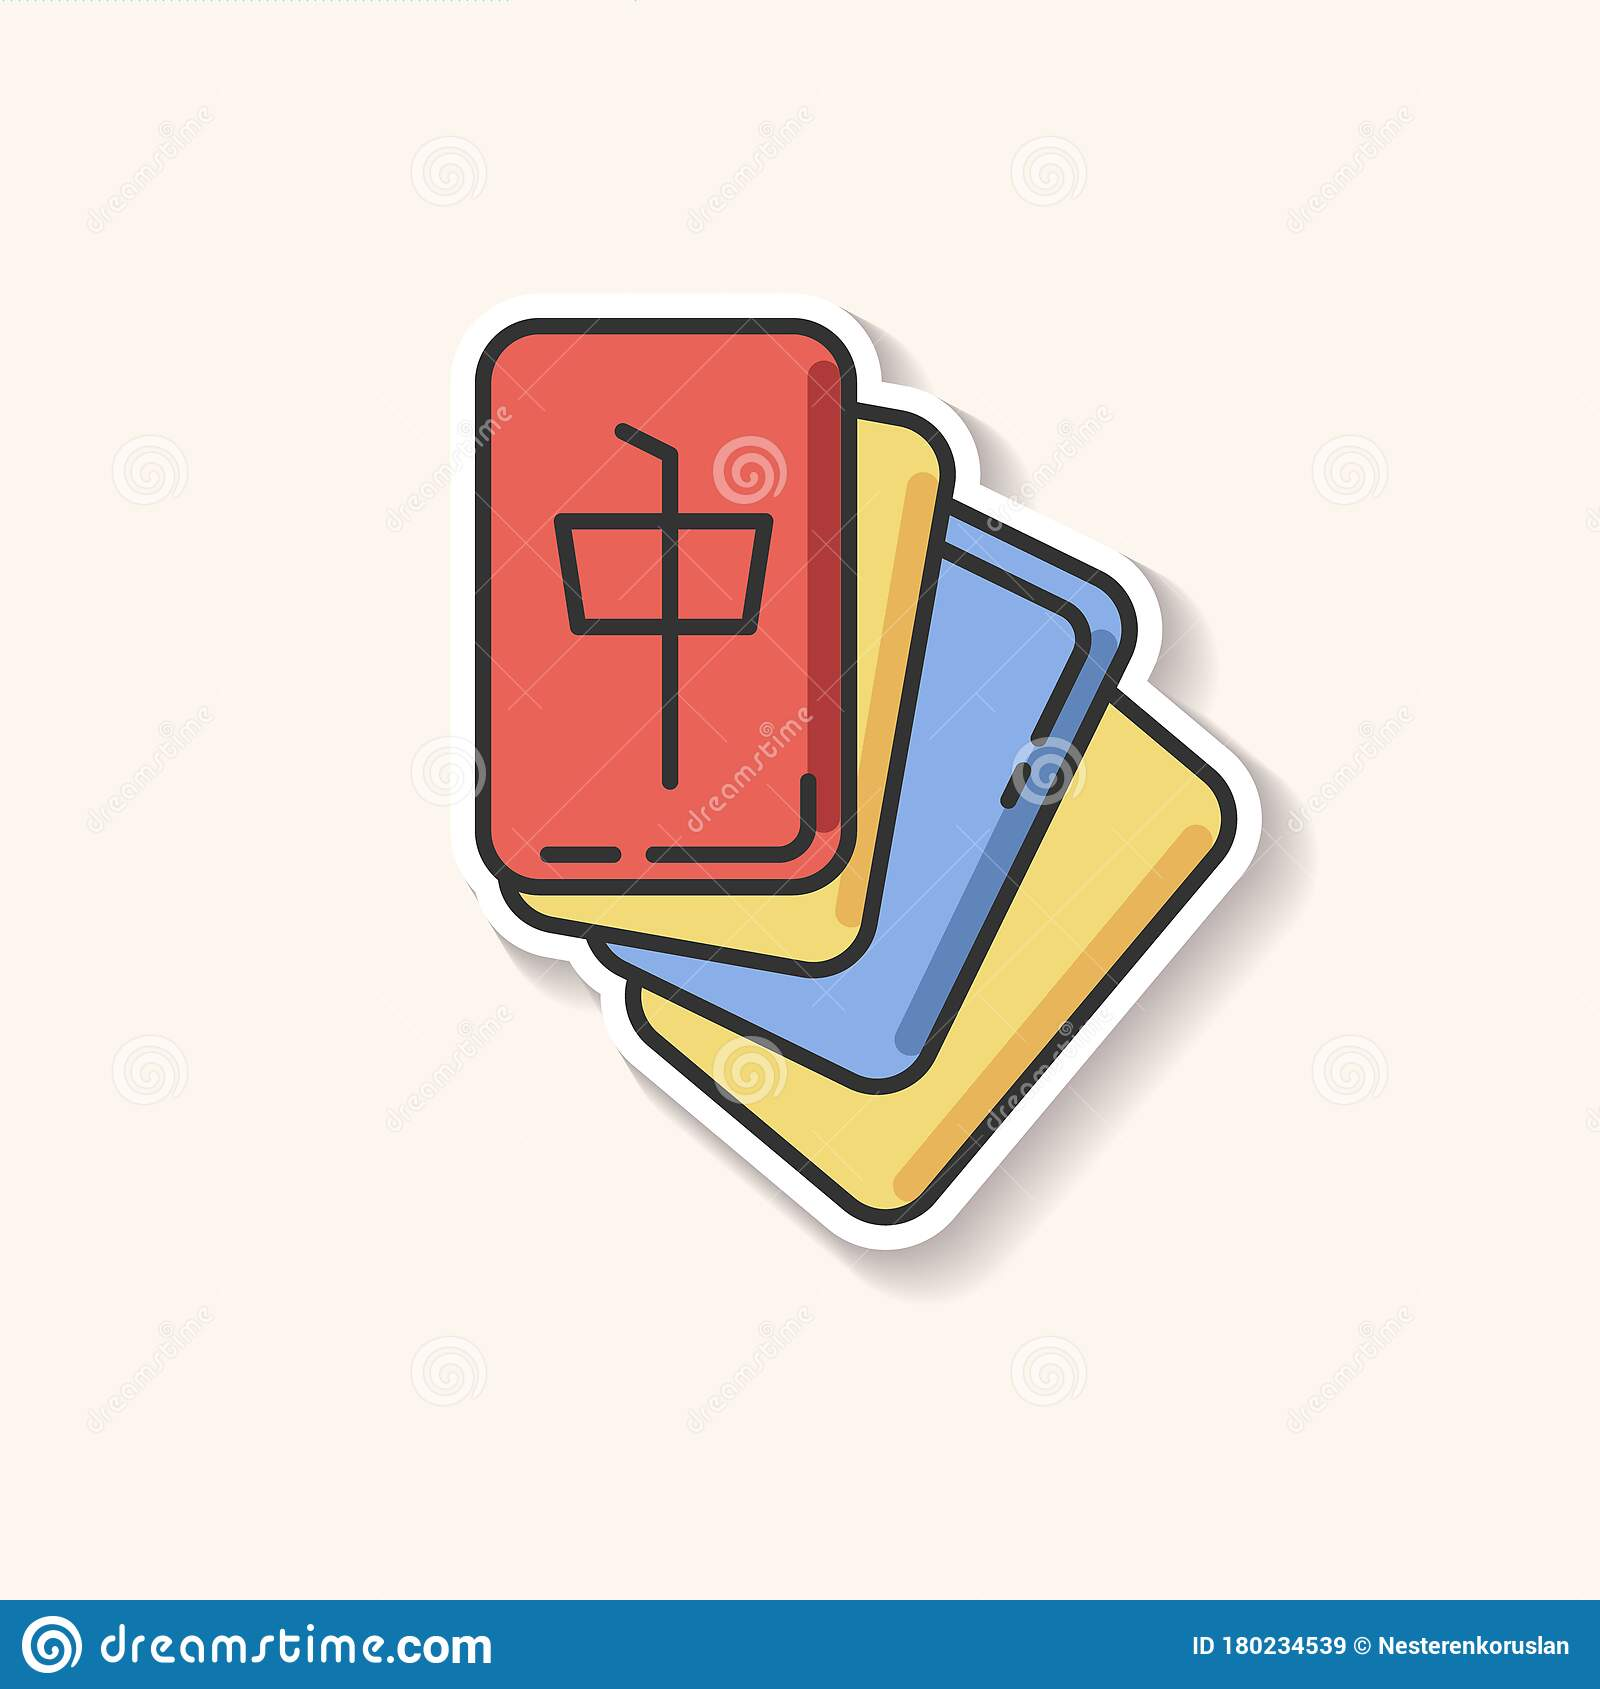 mahjong patch tile based game stock vector illustration of game flat 180234539